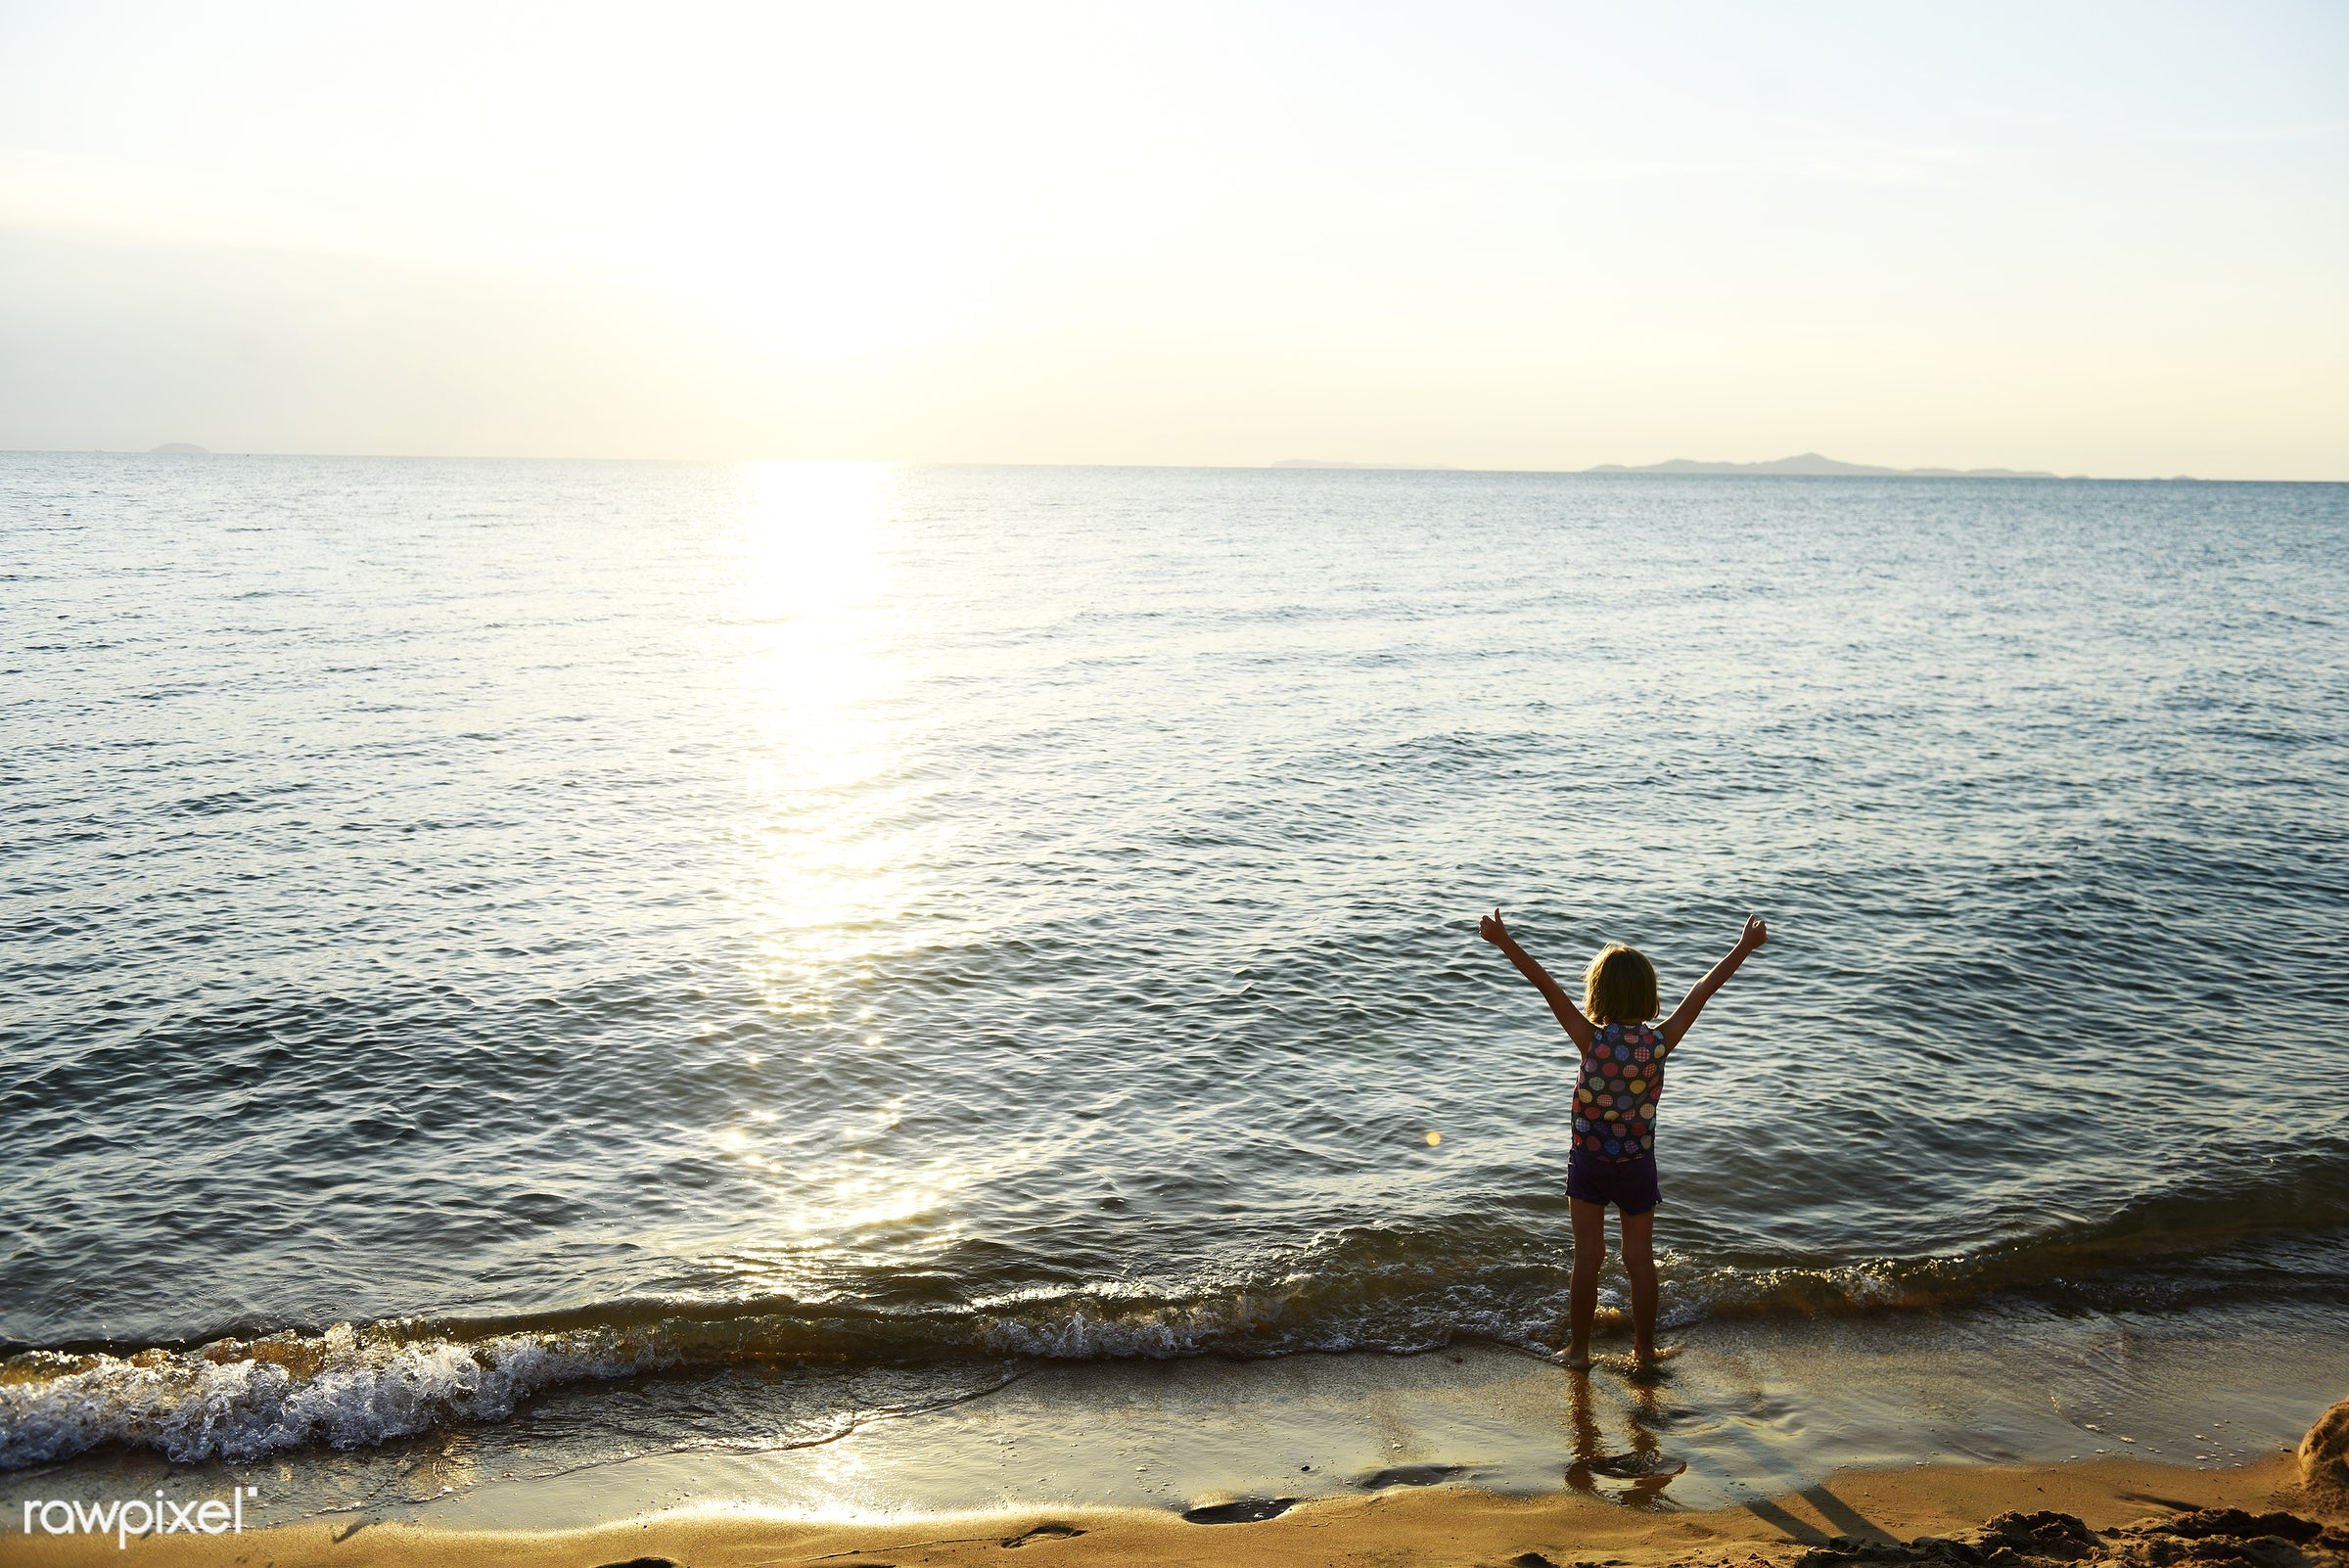 beach, kid, vacation, child, rear view, alone, arms raised, blonde, coast, girl, holiday, leisure, outdoors, relax, sand,...